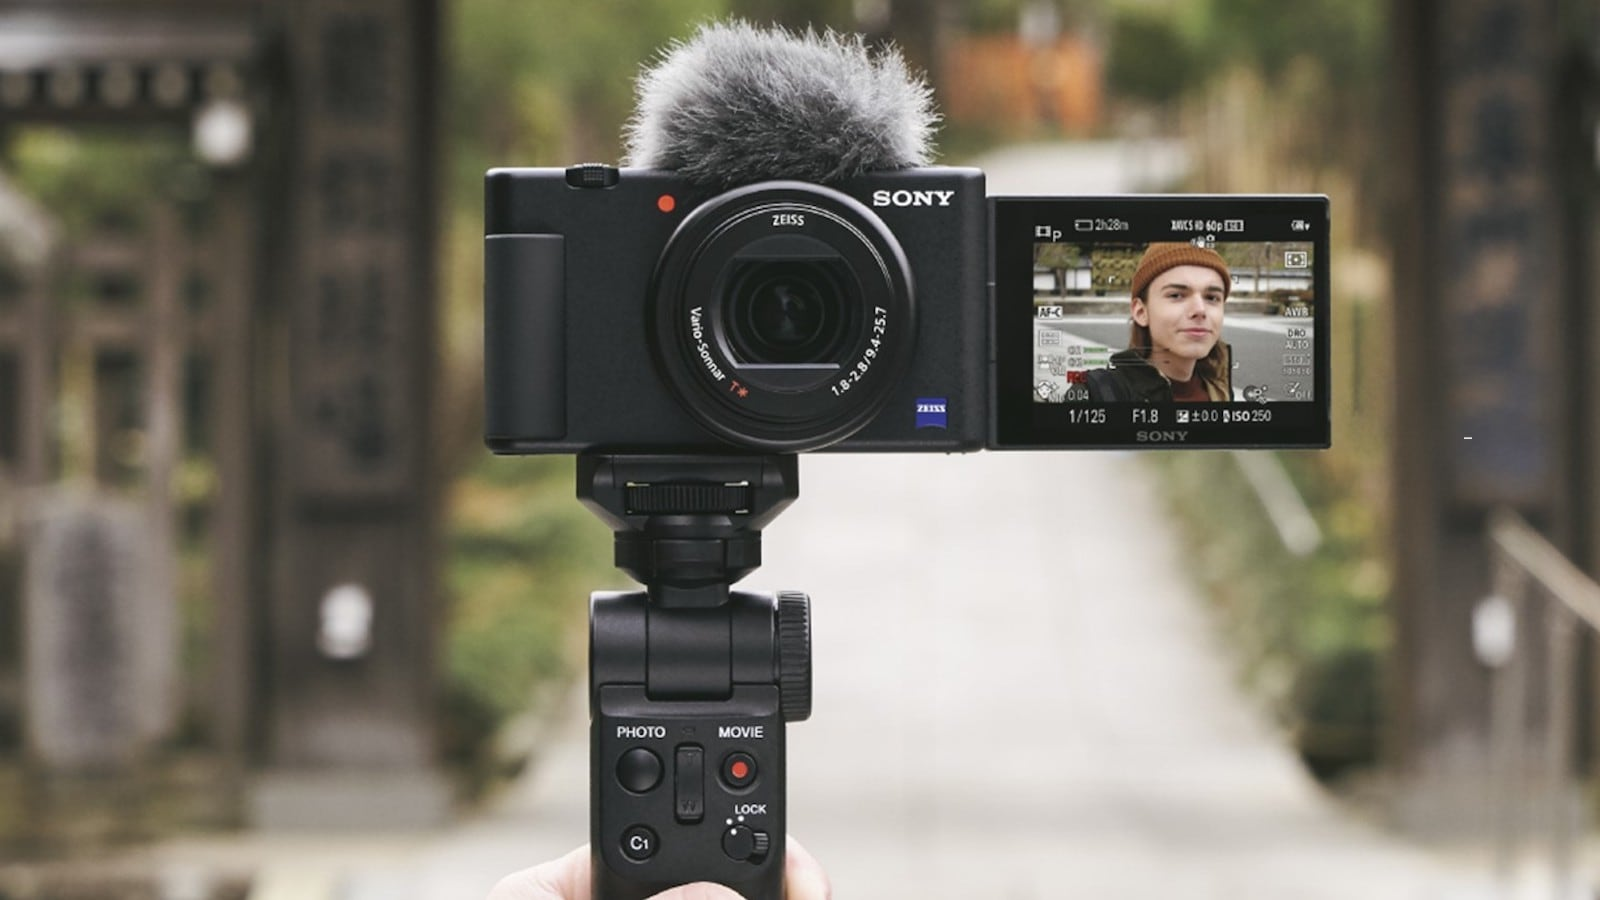 Sony ZV-1 Digital Vlogging Camera is a pocket-size all-in-one content creation tool